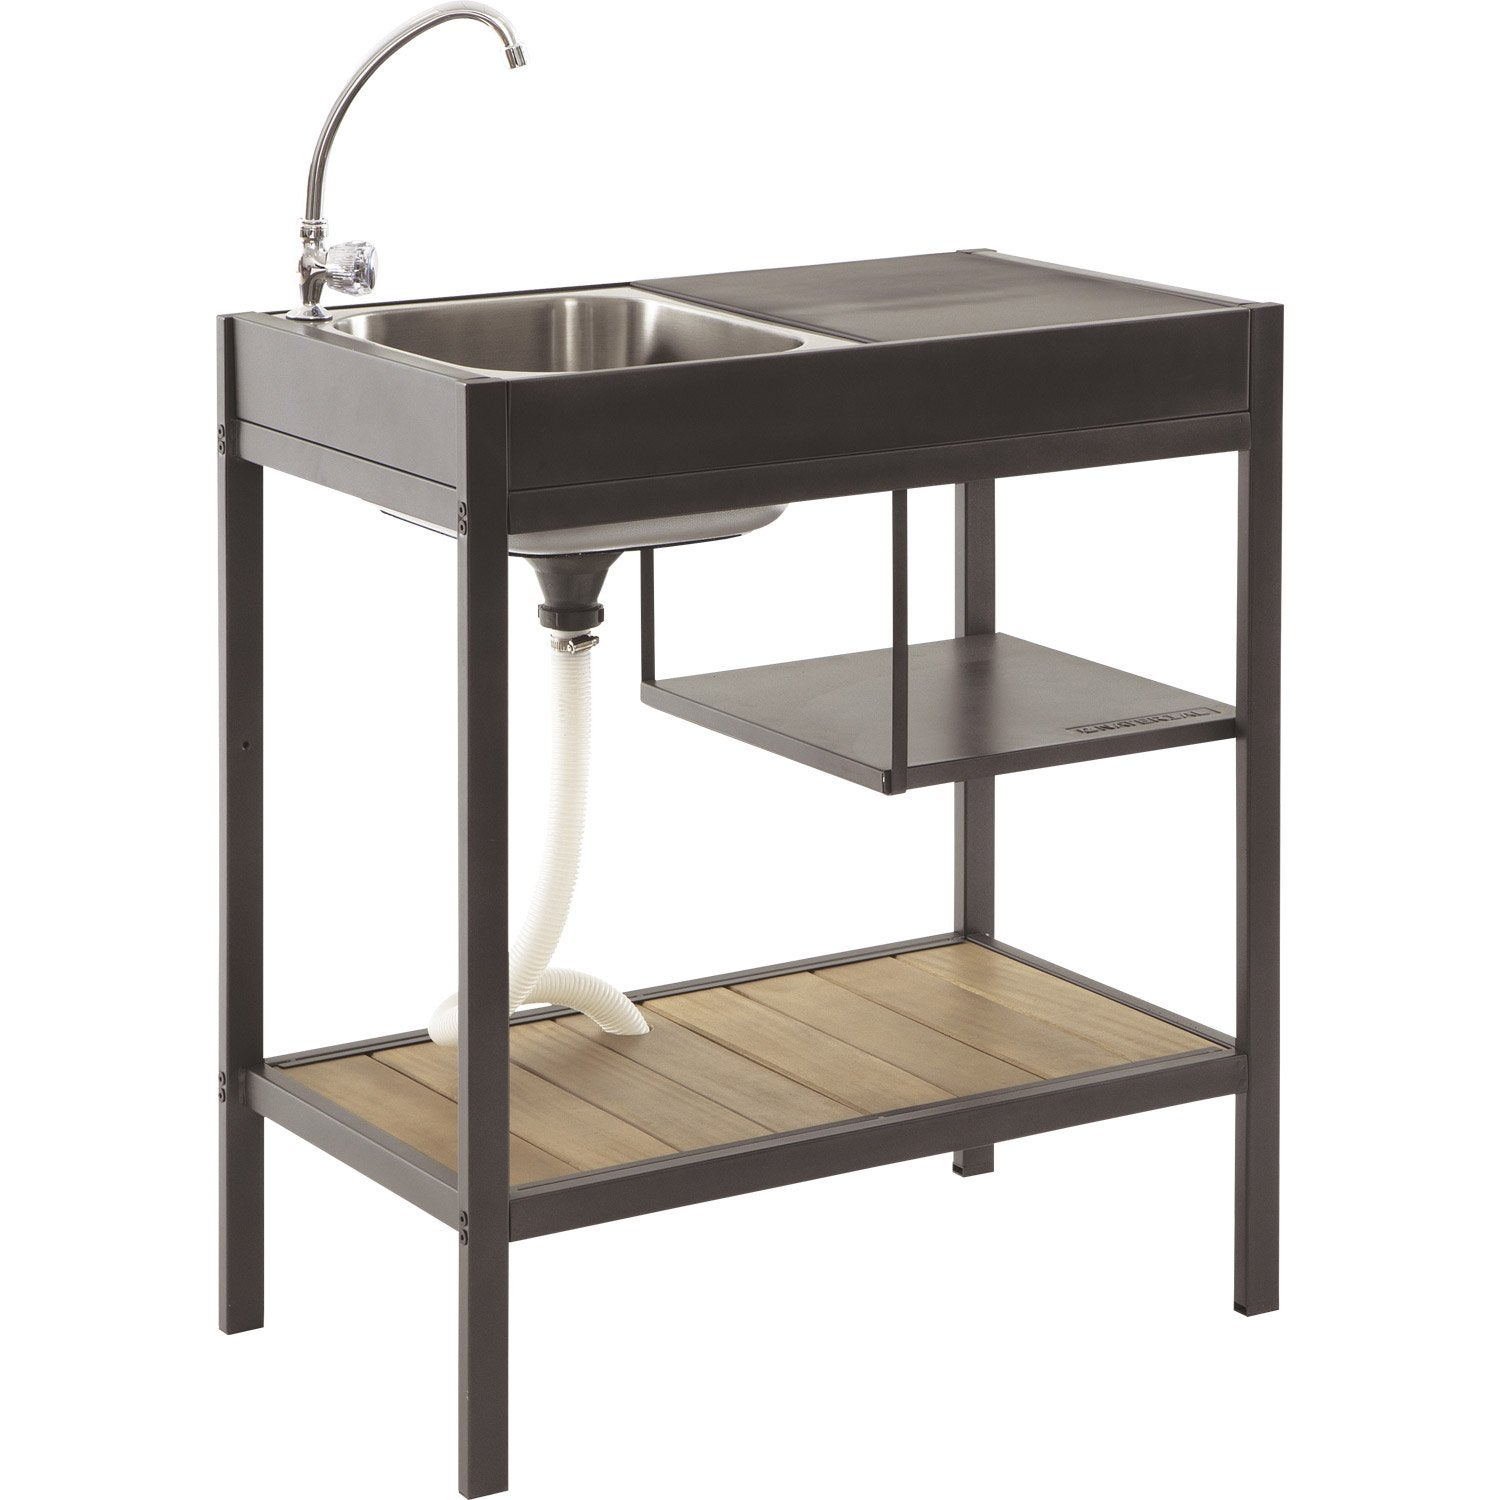 Point d 39 eau naterial cuisine module resort leroy merlin for Lavabo exterieur jardin